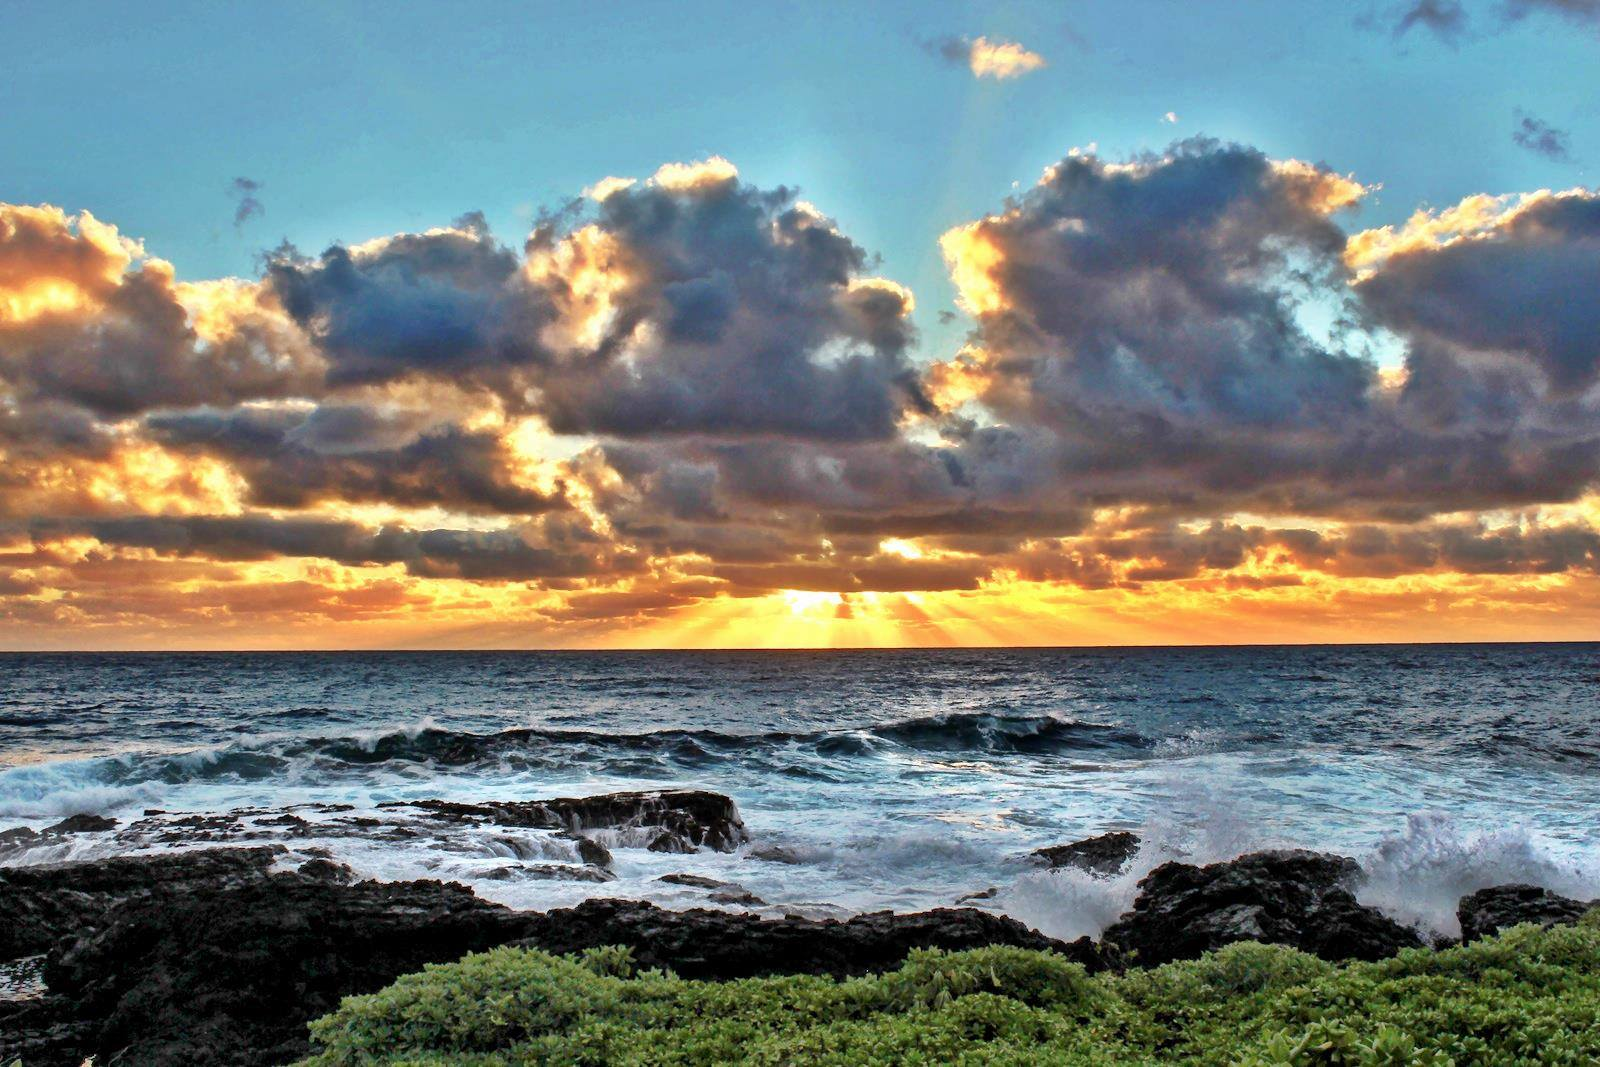 Maui sunrise from Hana